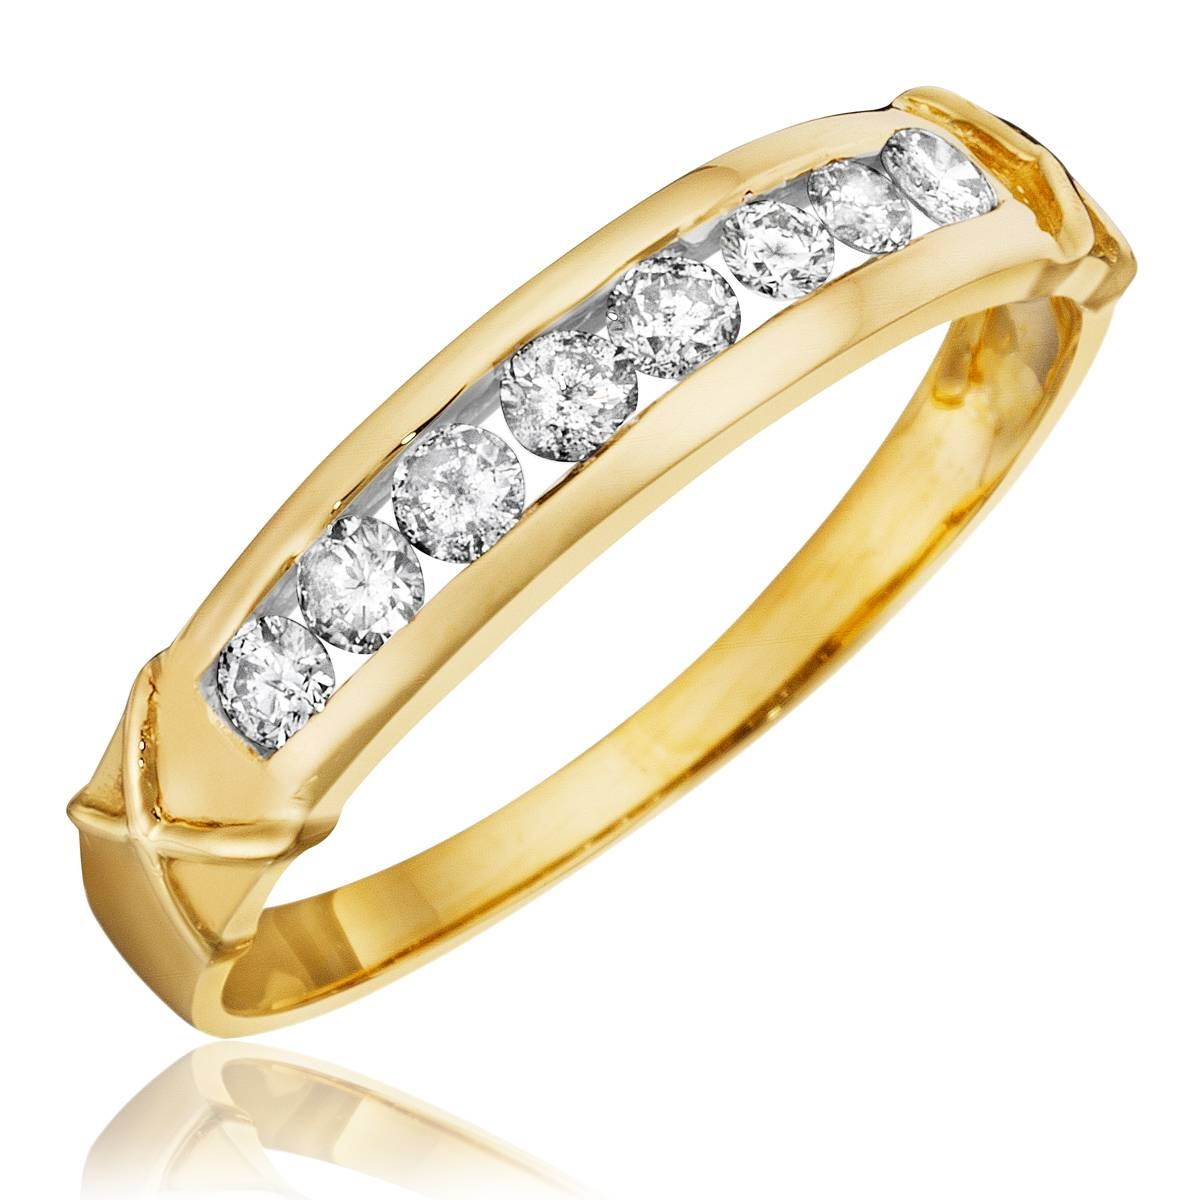 1 Carat Diamond Trio Wedding Ring Set 14K Yellow Gold In Yellow Gold Wedding Rings For Women (View 1 of 15)